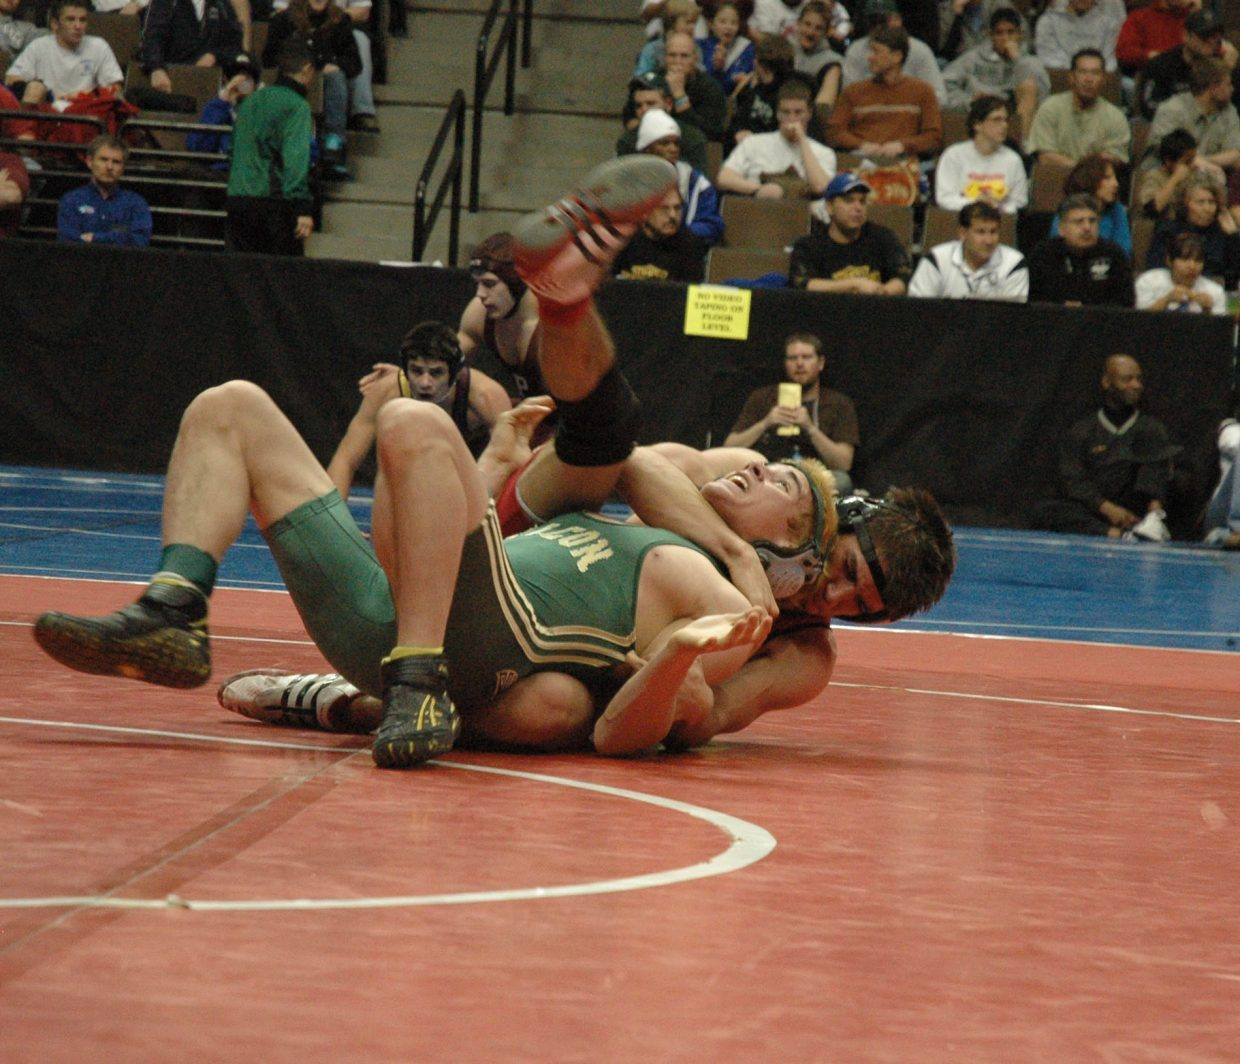 Steamboat senior Houston Mader defeated Falcon sophomore Jose Cos, 4-2, in the first round of Thursday's CHSAA State Wrestling Tournament in Denver.